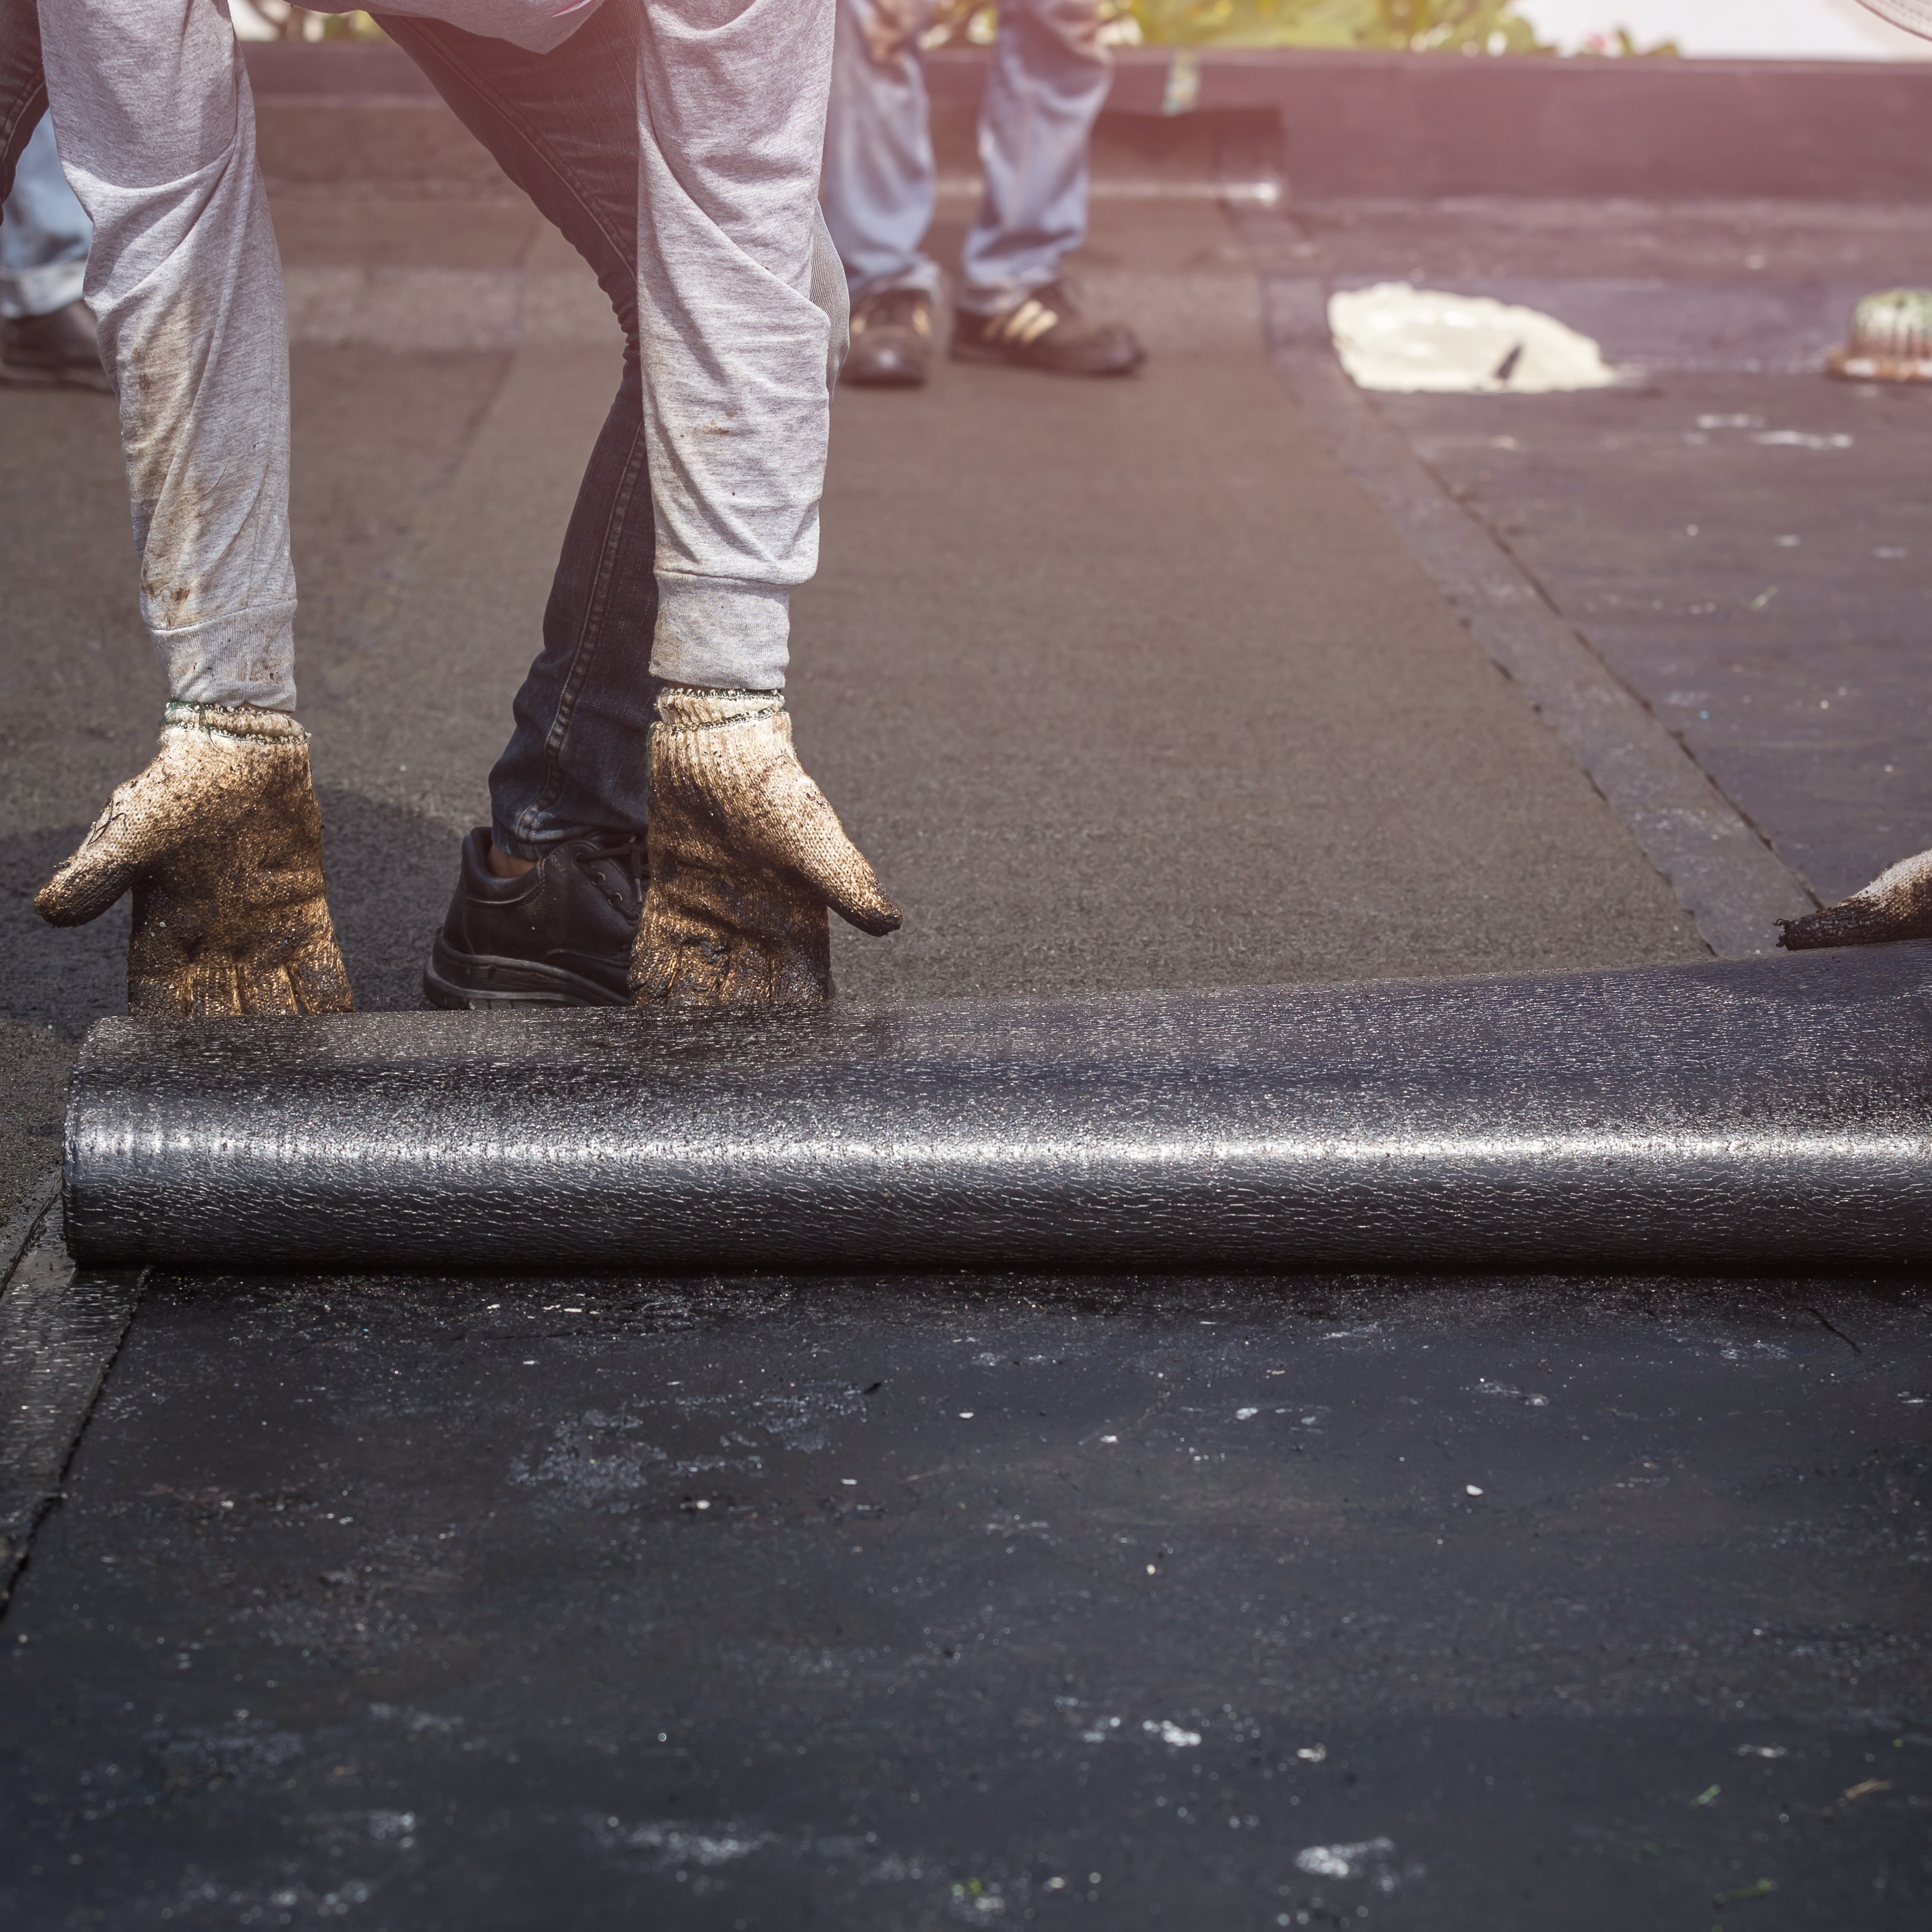 TPO membrane being installed on a roof.